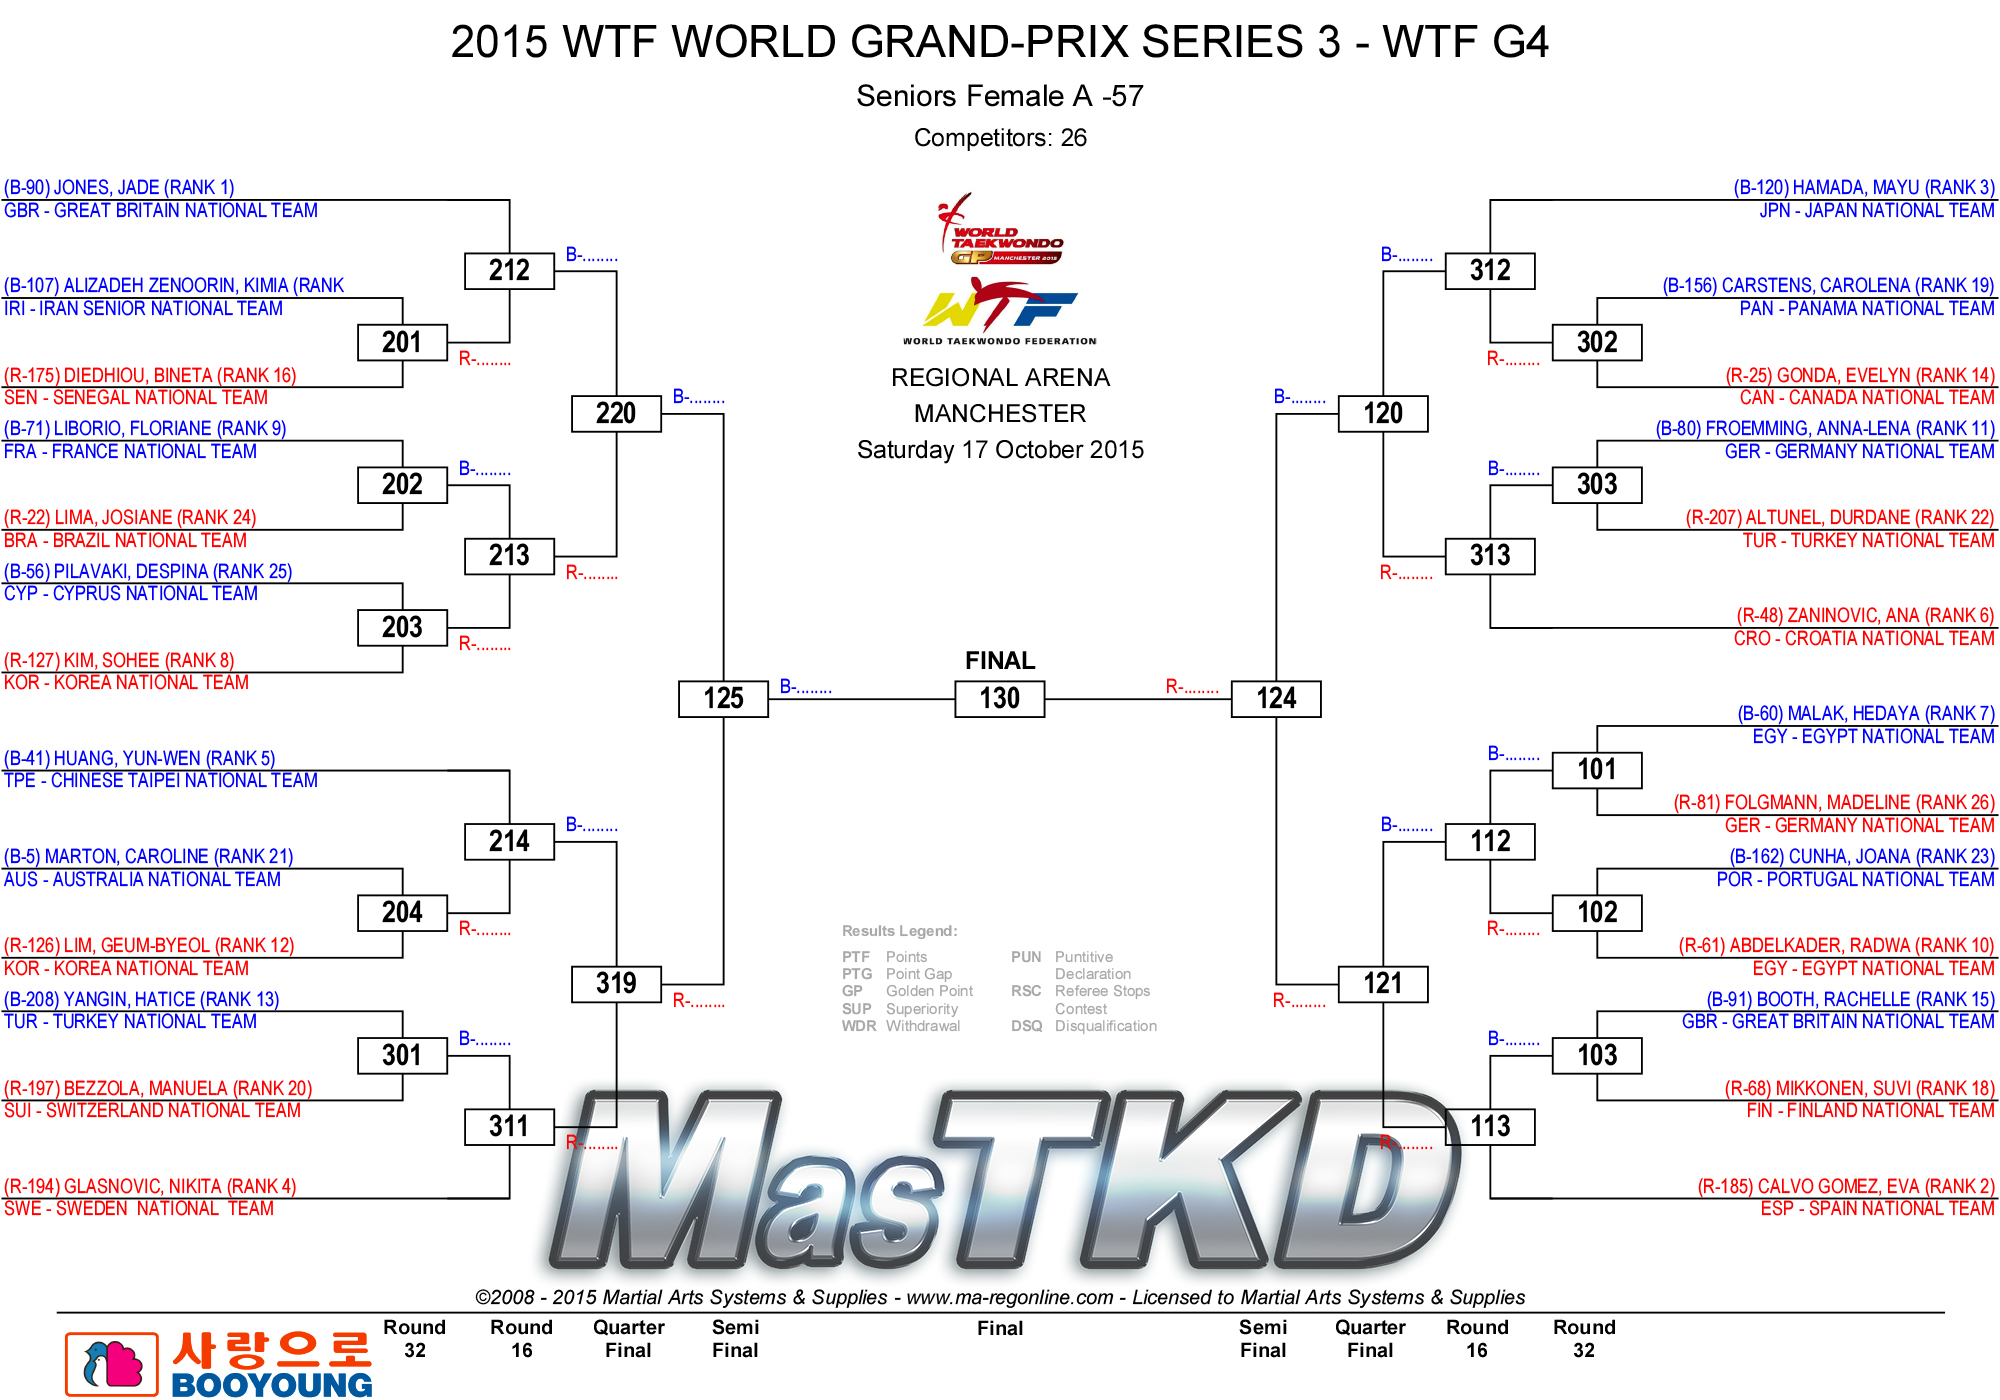 F-57_2015_WTF_WORLD_GRAND-PRIX_SERIES_3_DRAW_D2